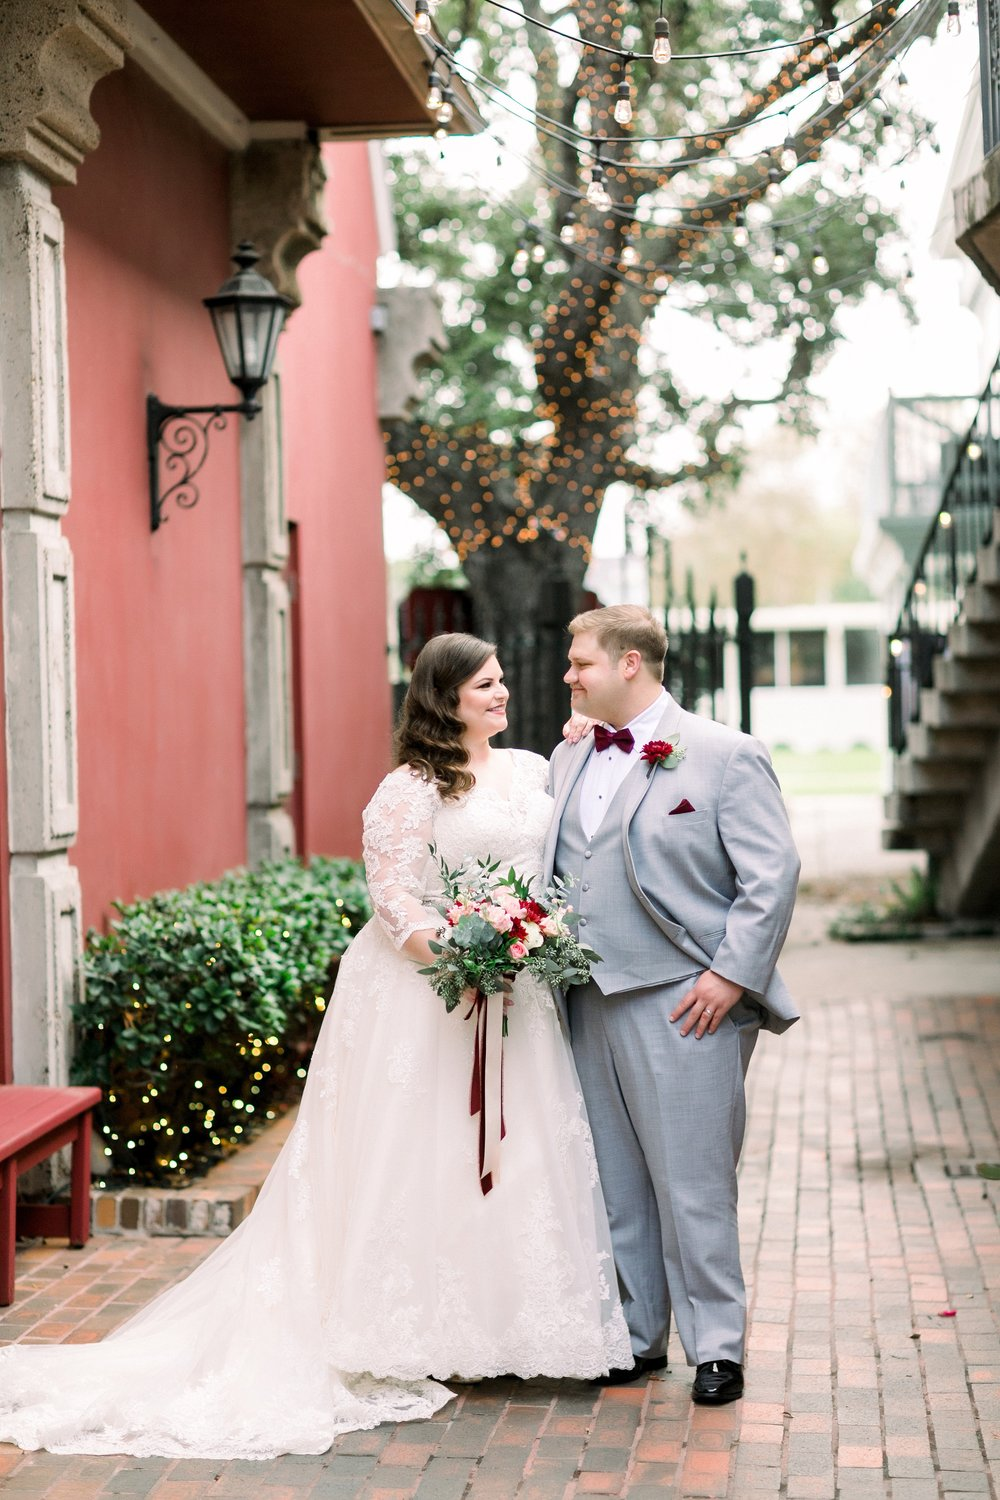 gaslight-at-courtyard-square-corpus-christi-wedding-omni-hotel-fall-winter-wedding-texas-wedding-photographer-lauren-pinson-0037.jpg